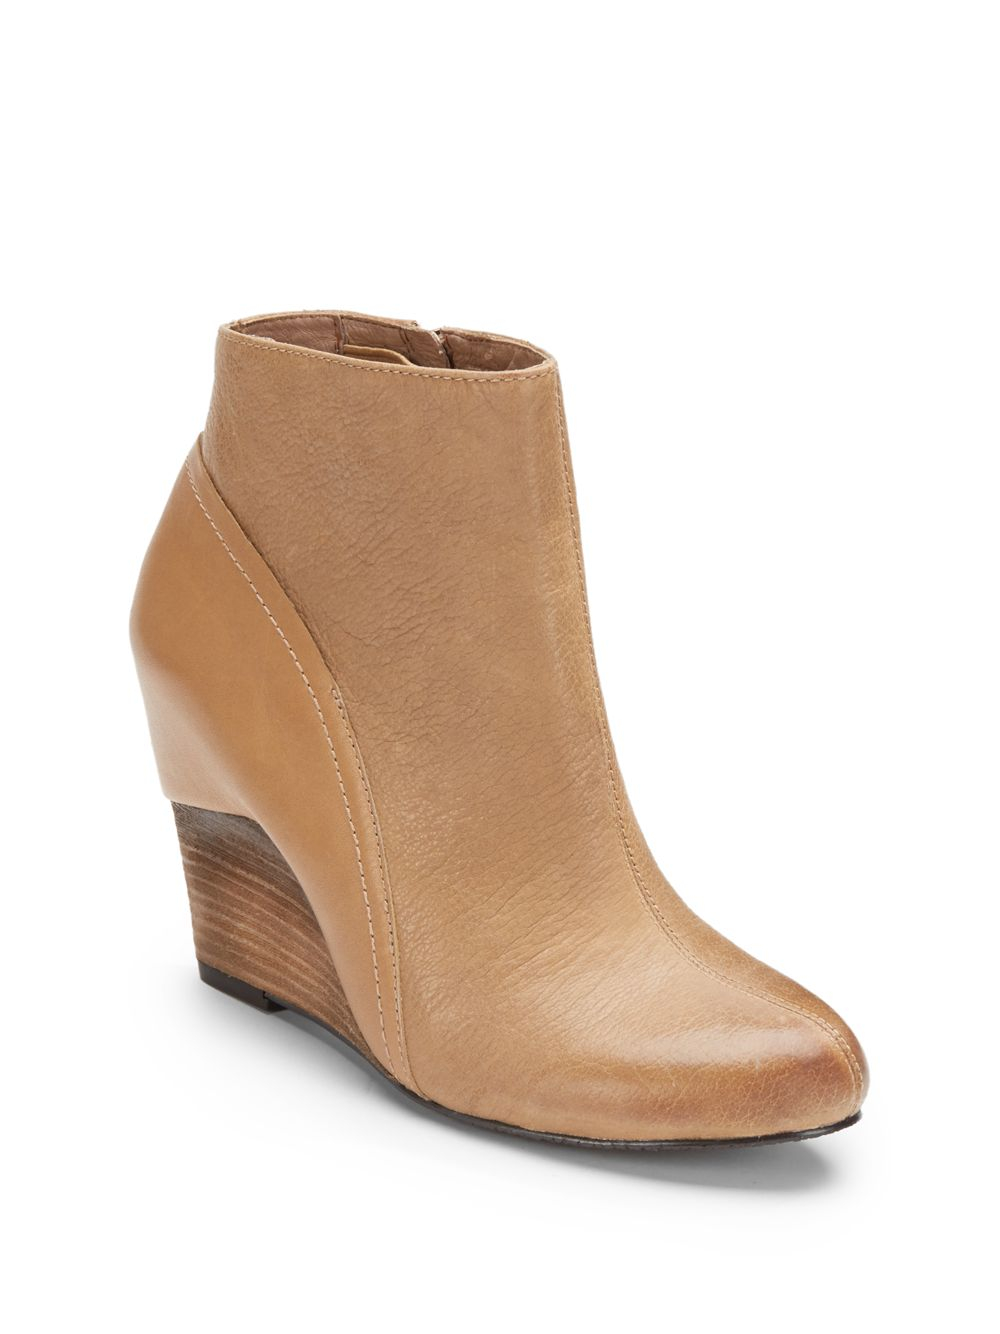 Vince camuto Hillari Leather Wedge Bootie in Natural   Lyst